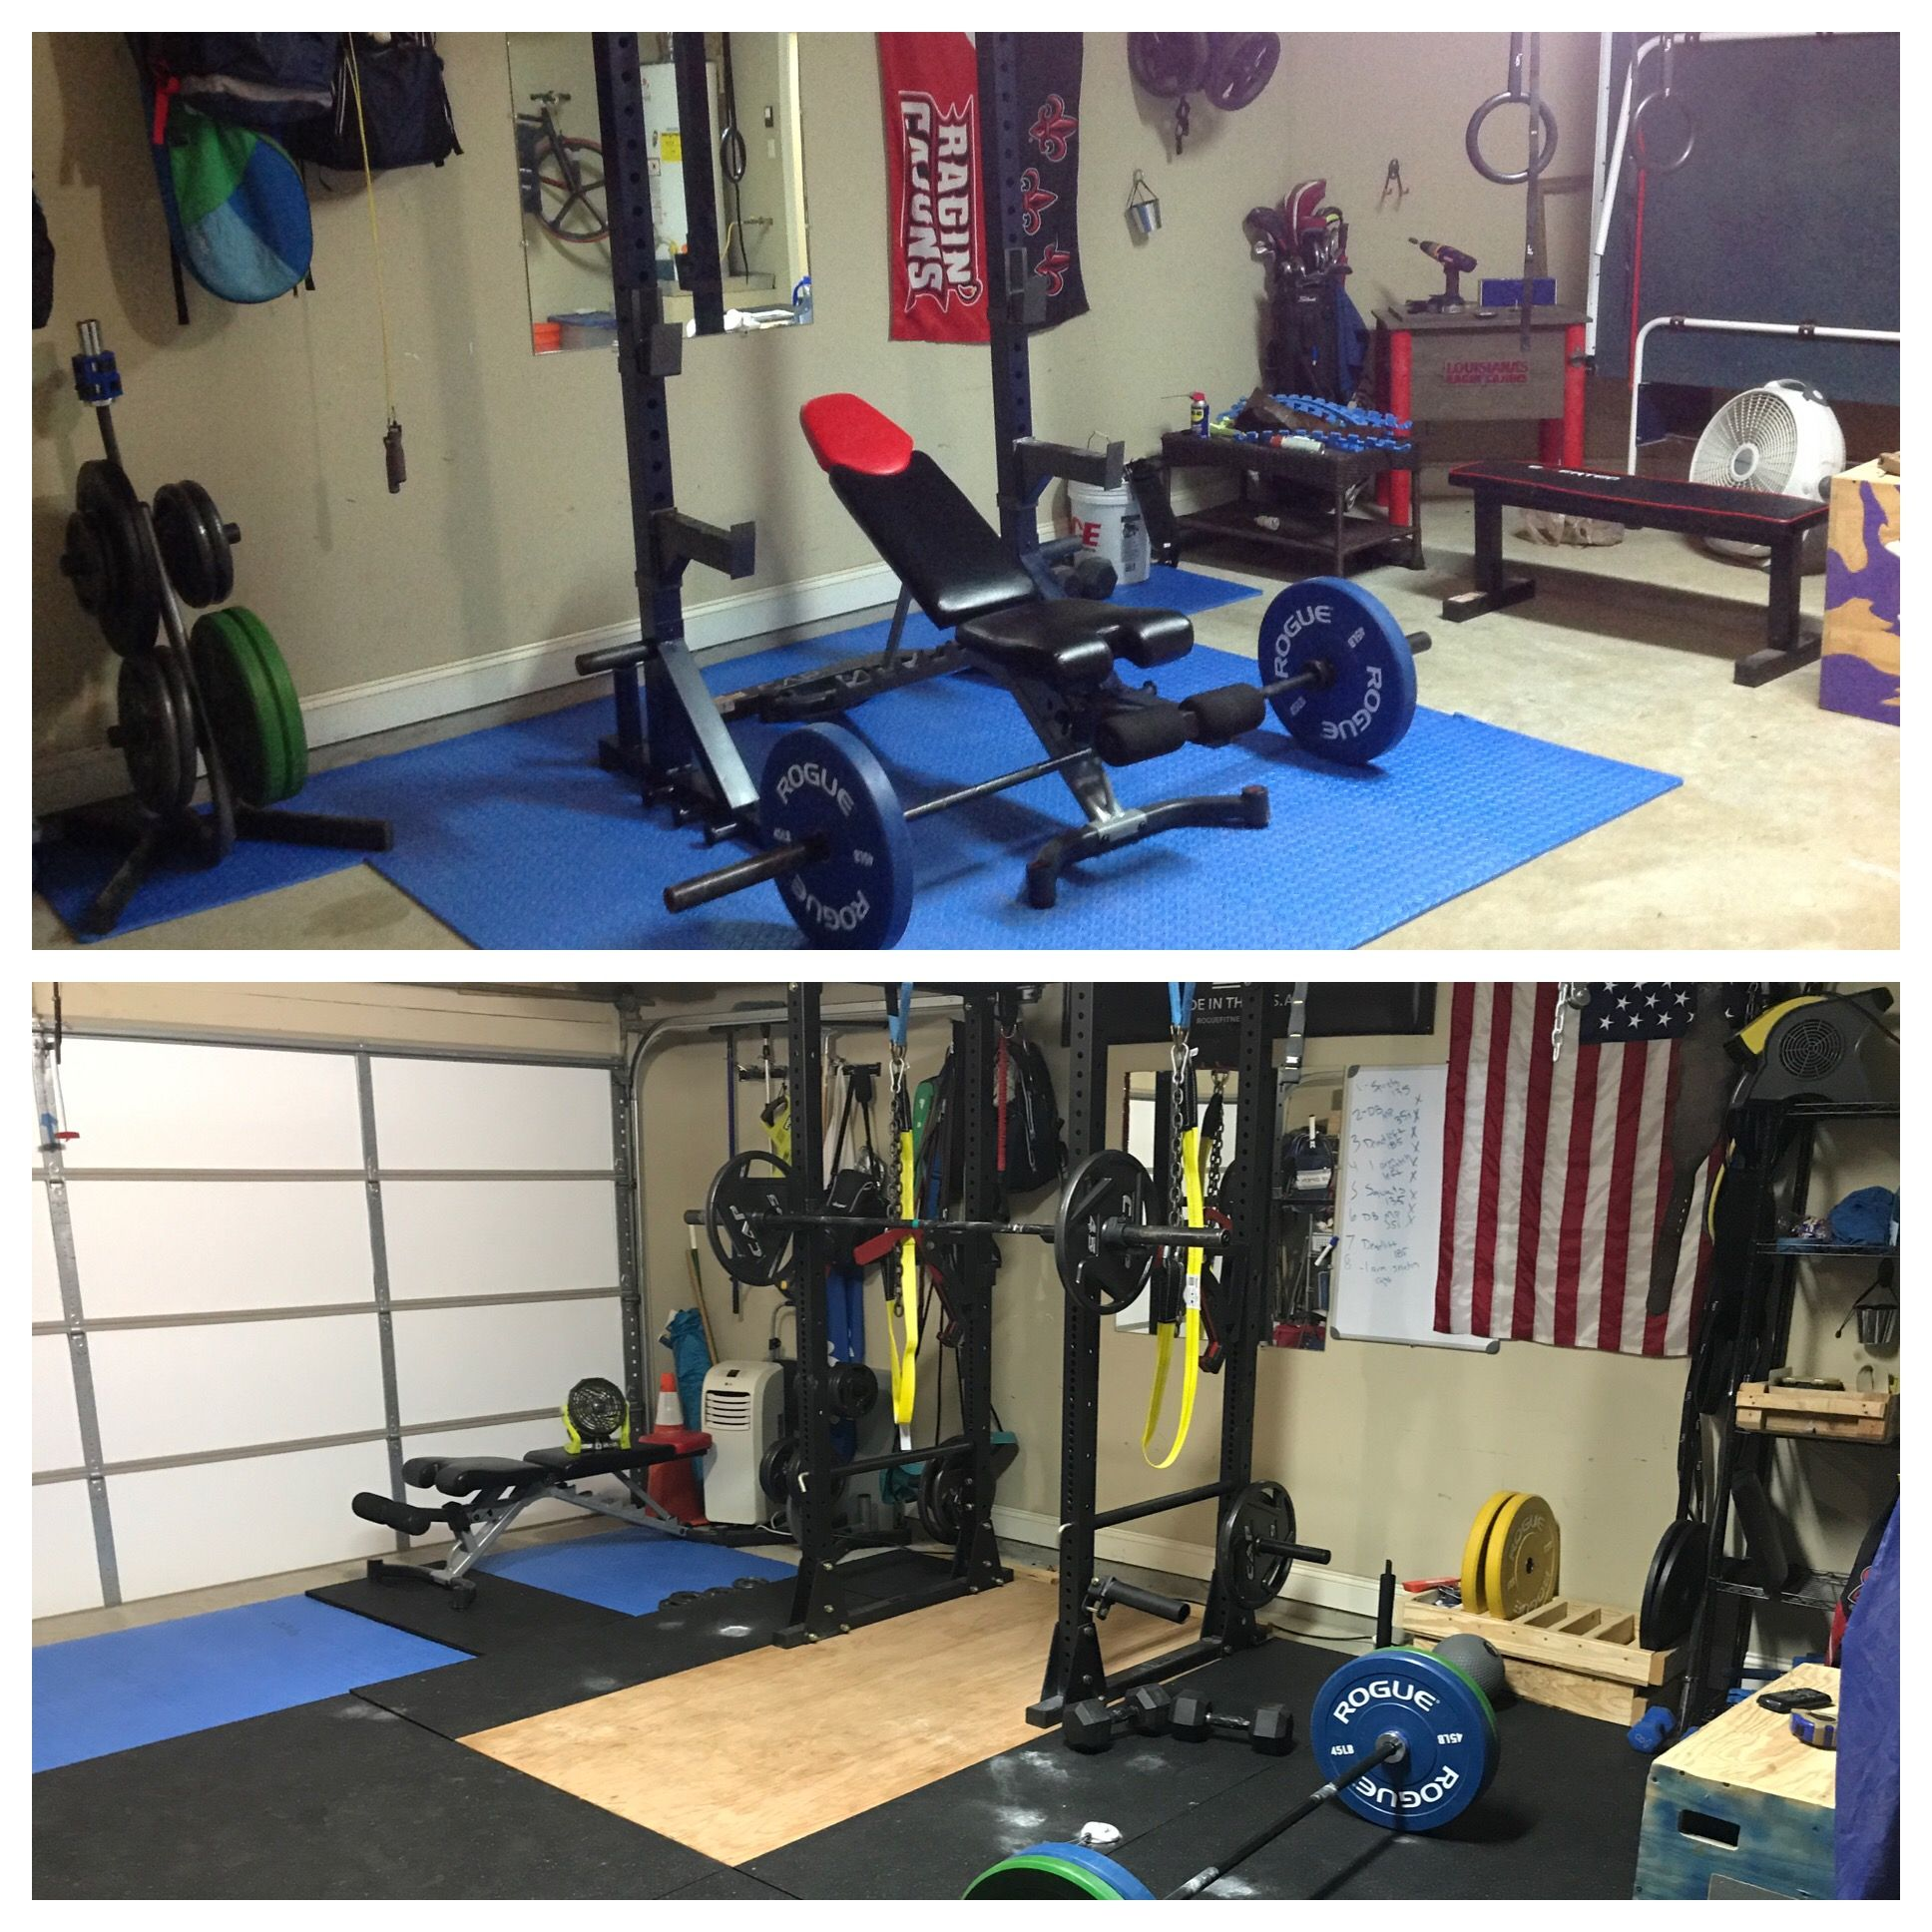 Garage gym 8 week reno. titan fitness power rack rogue bumpers and